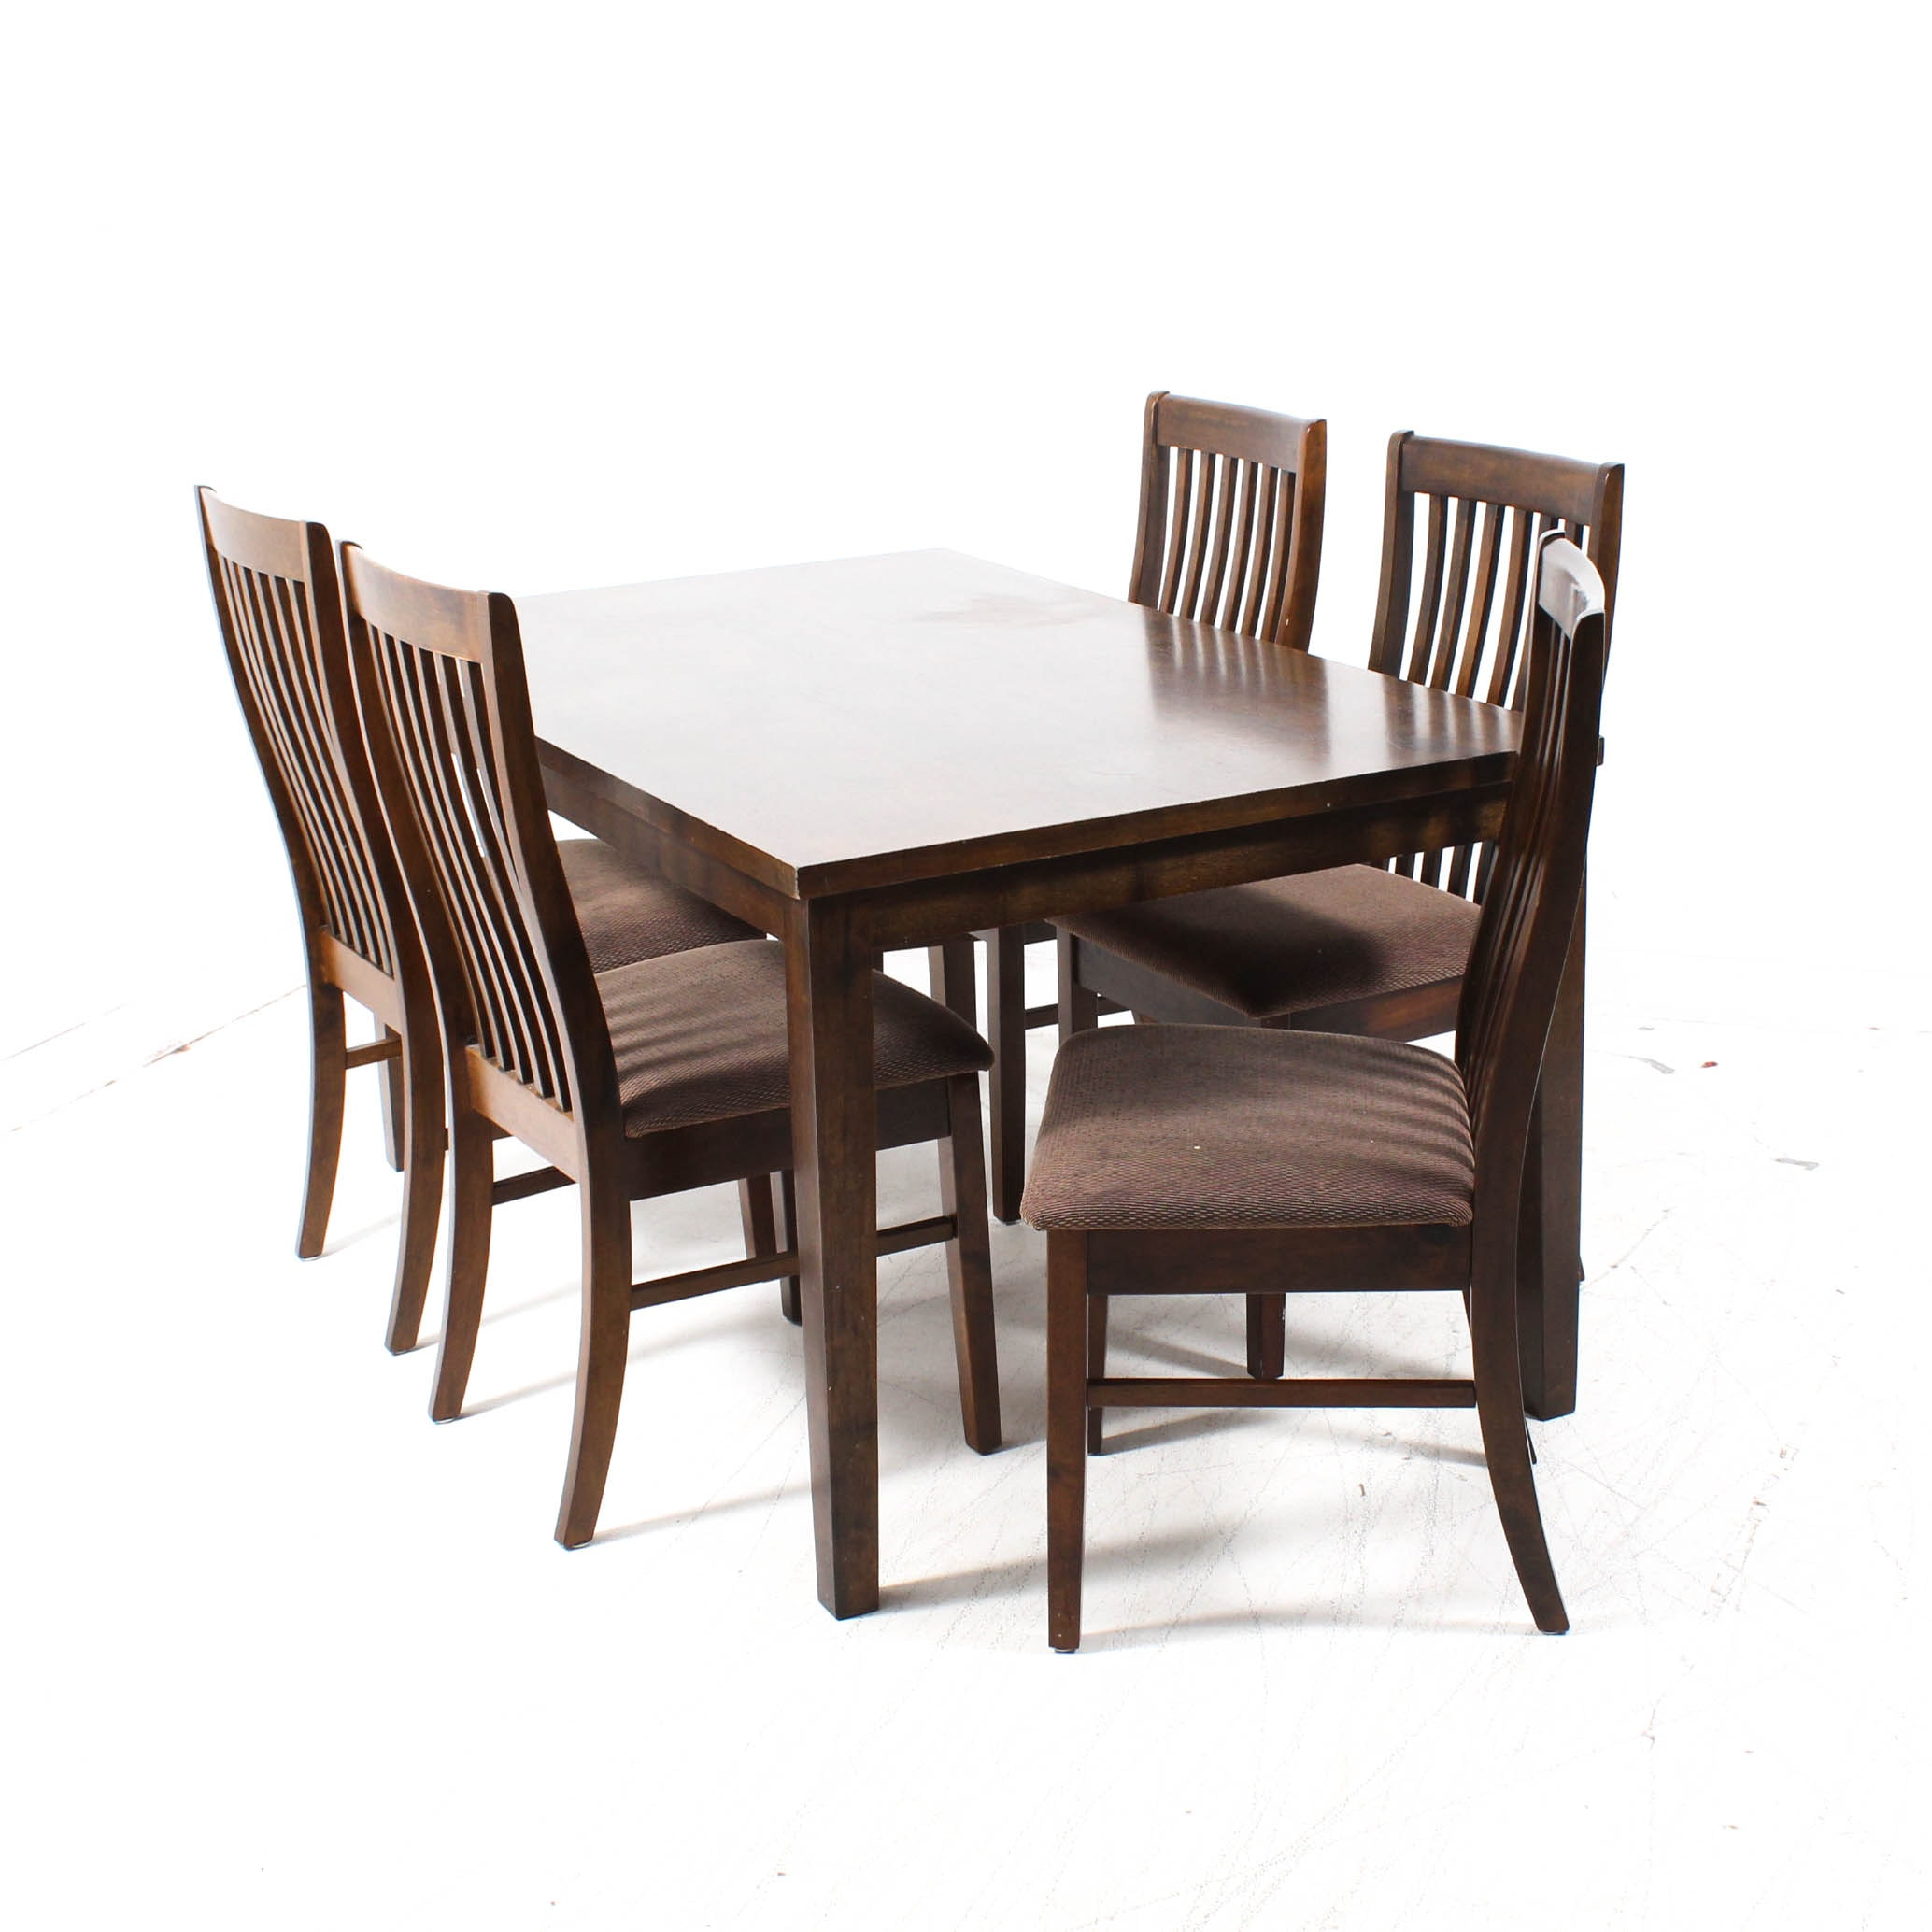 Arts and Crafts Style Dining Table and Chairs